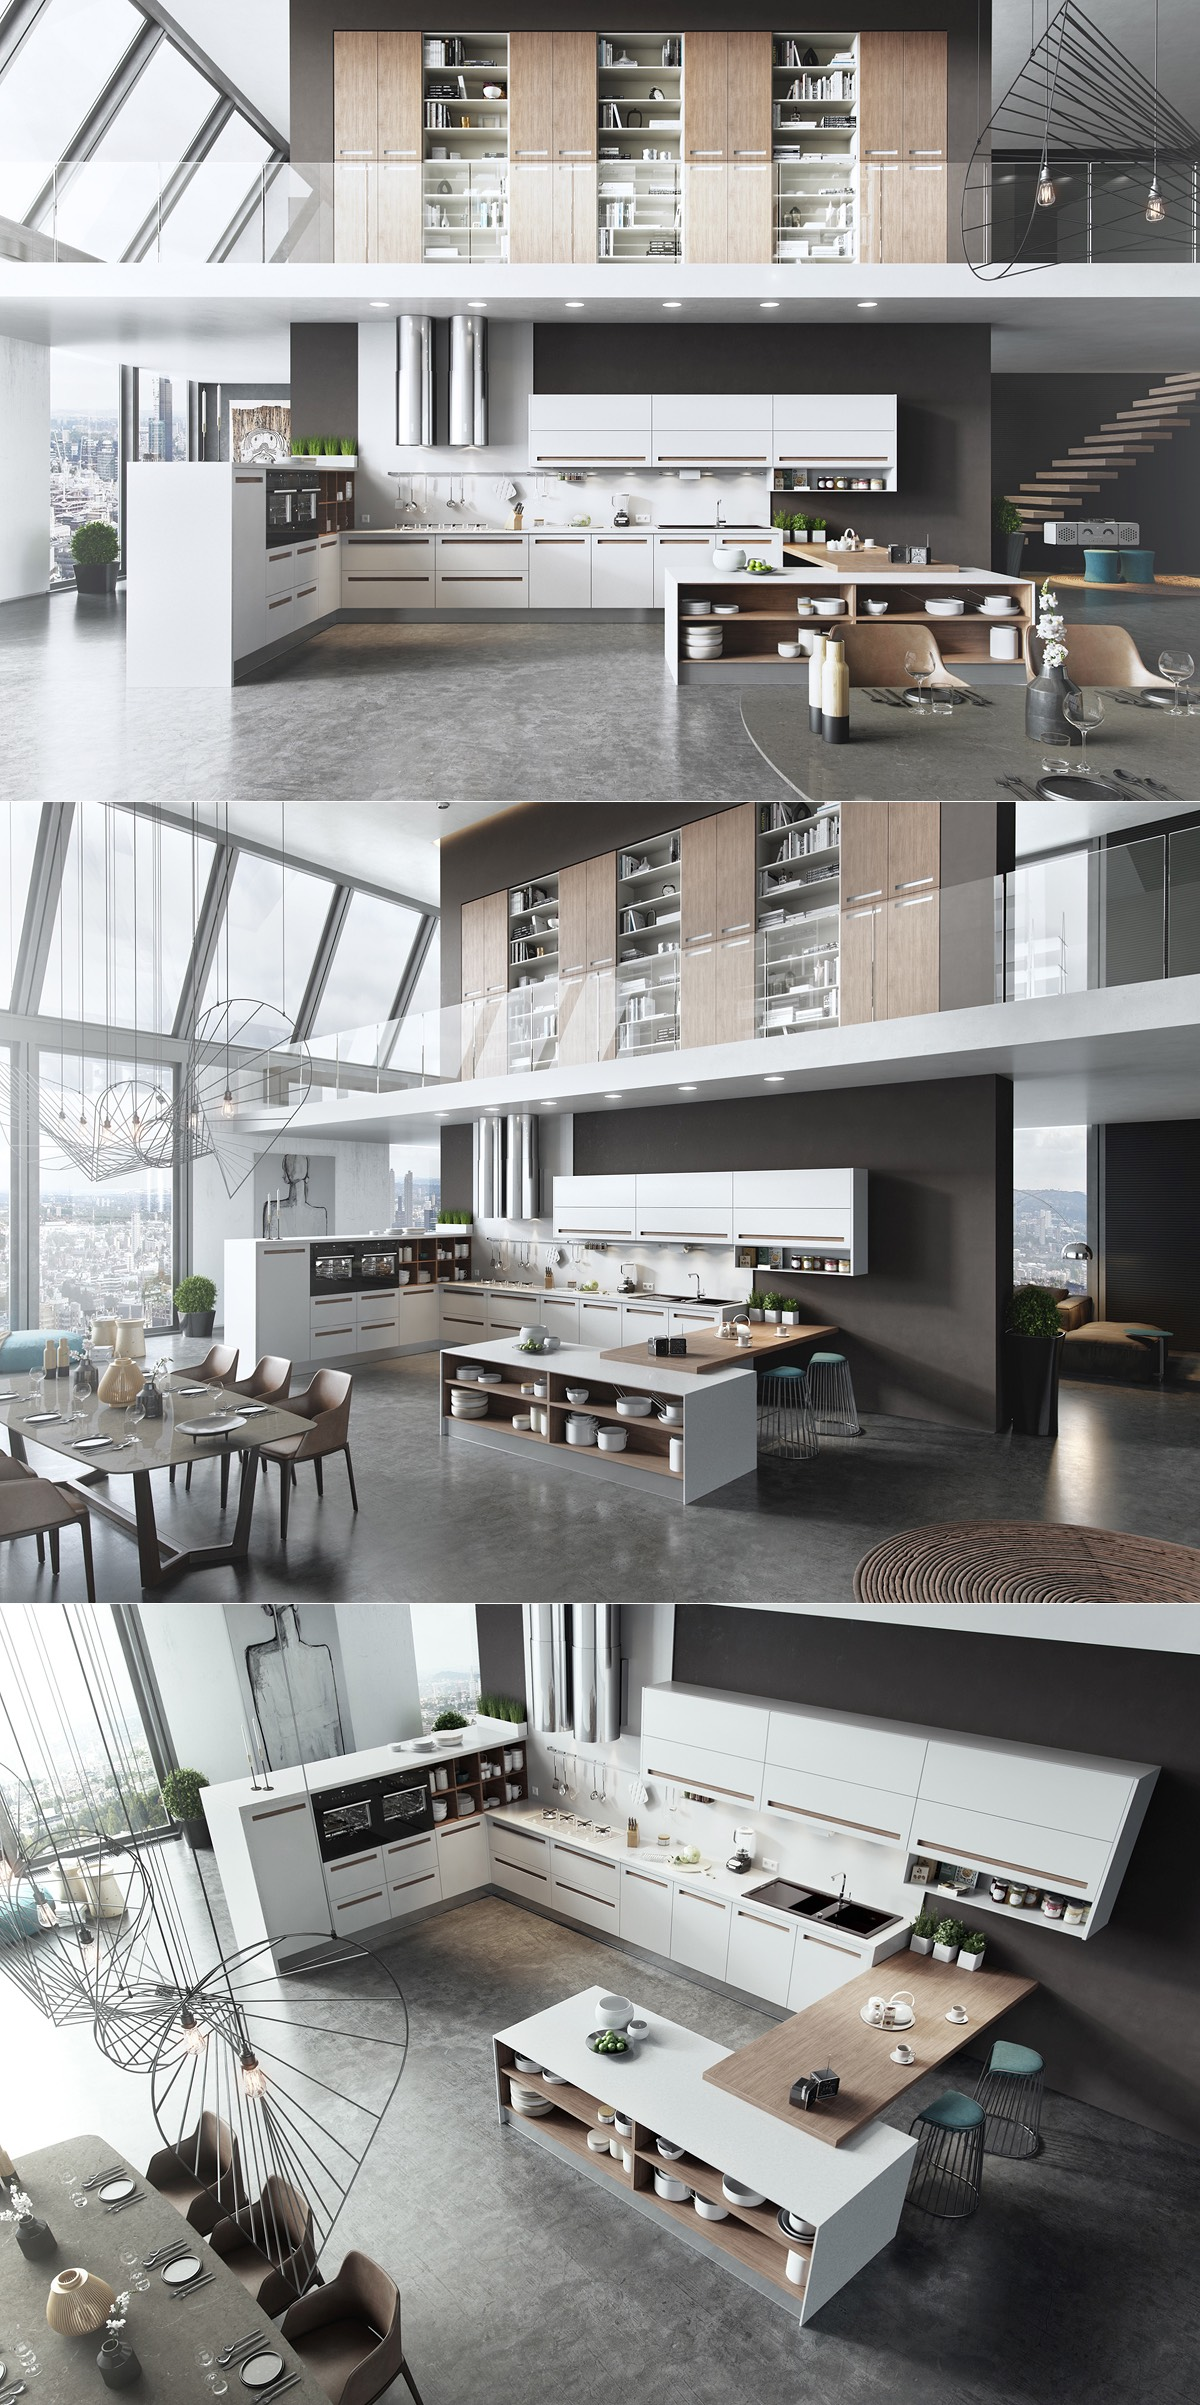 two-story-apartment-kitchen